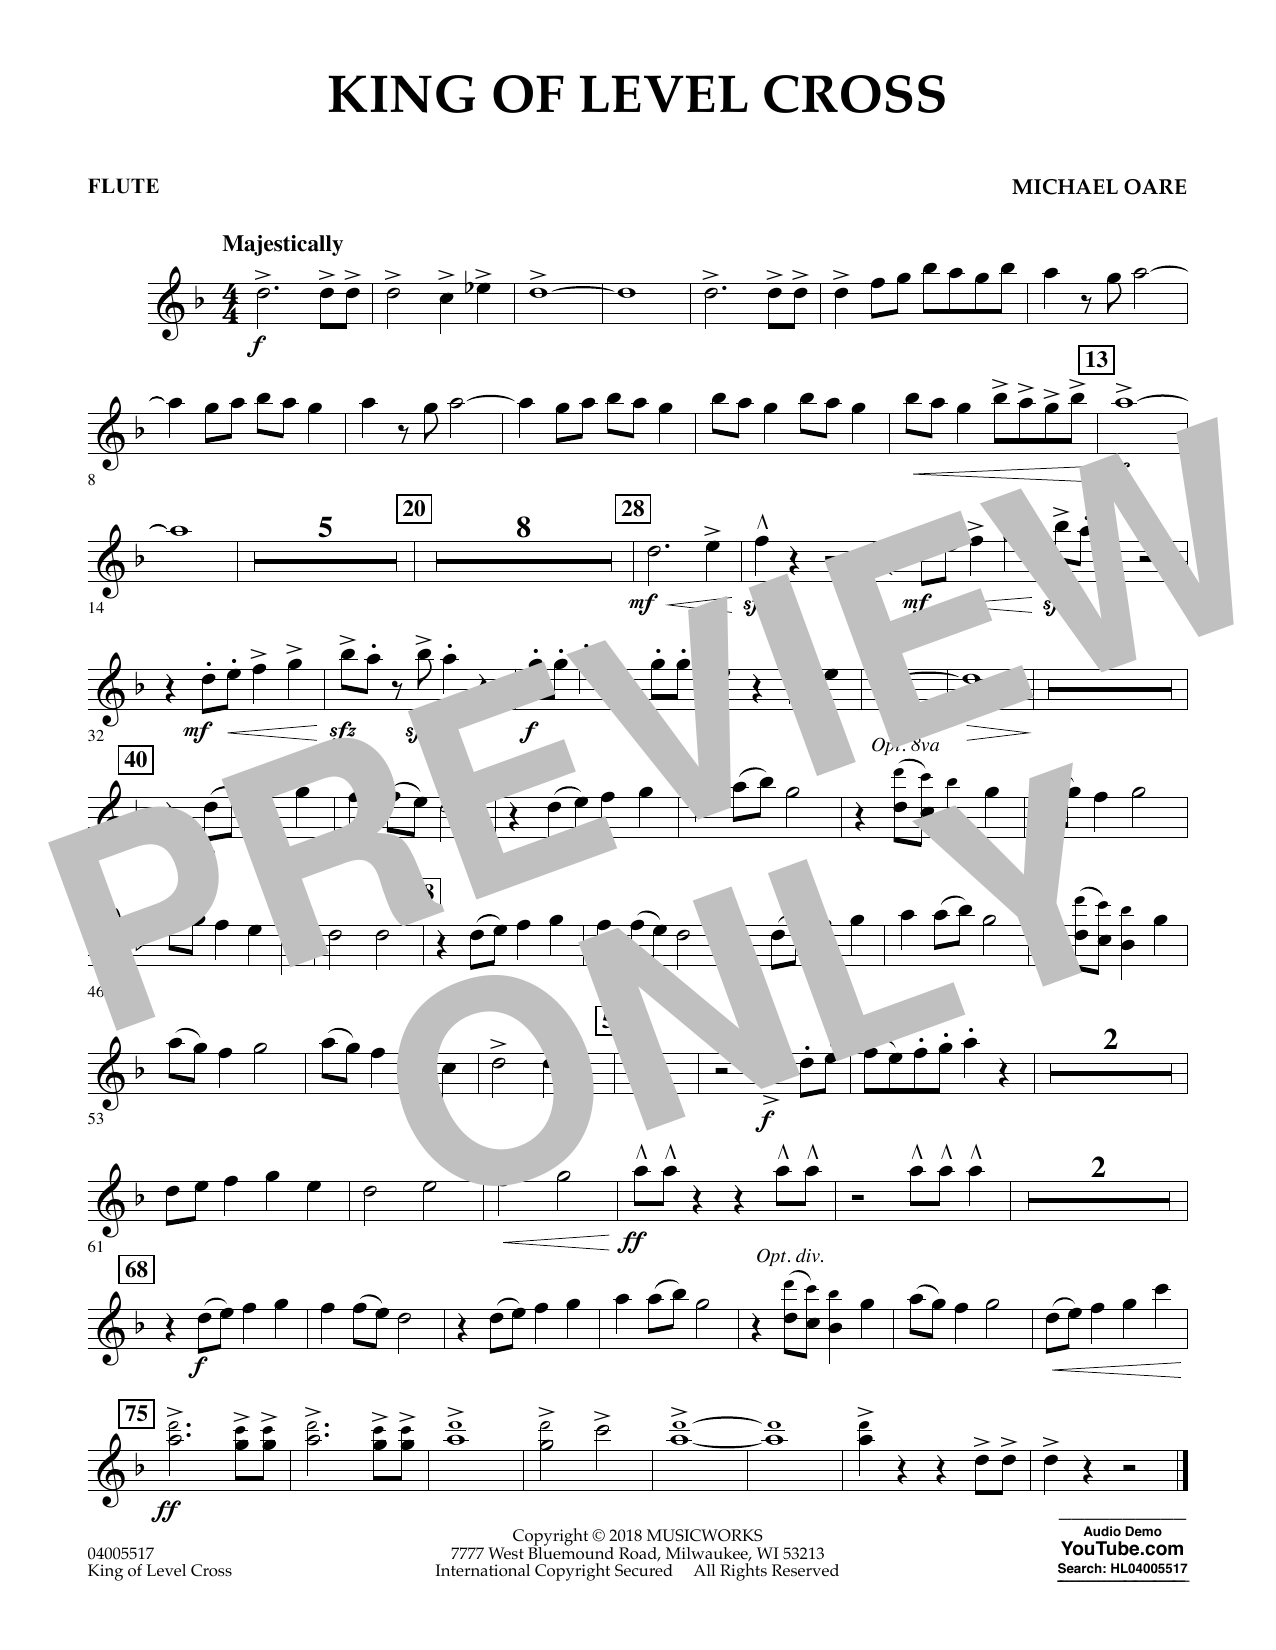 Michael Oare King of Level Cross - Flute sheet music notes and chords. Download Printable PDF.